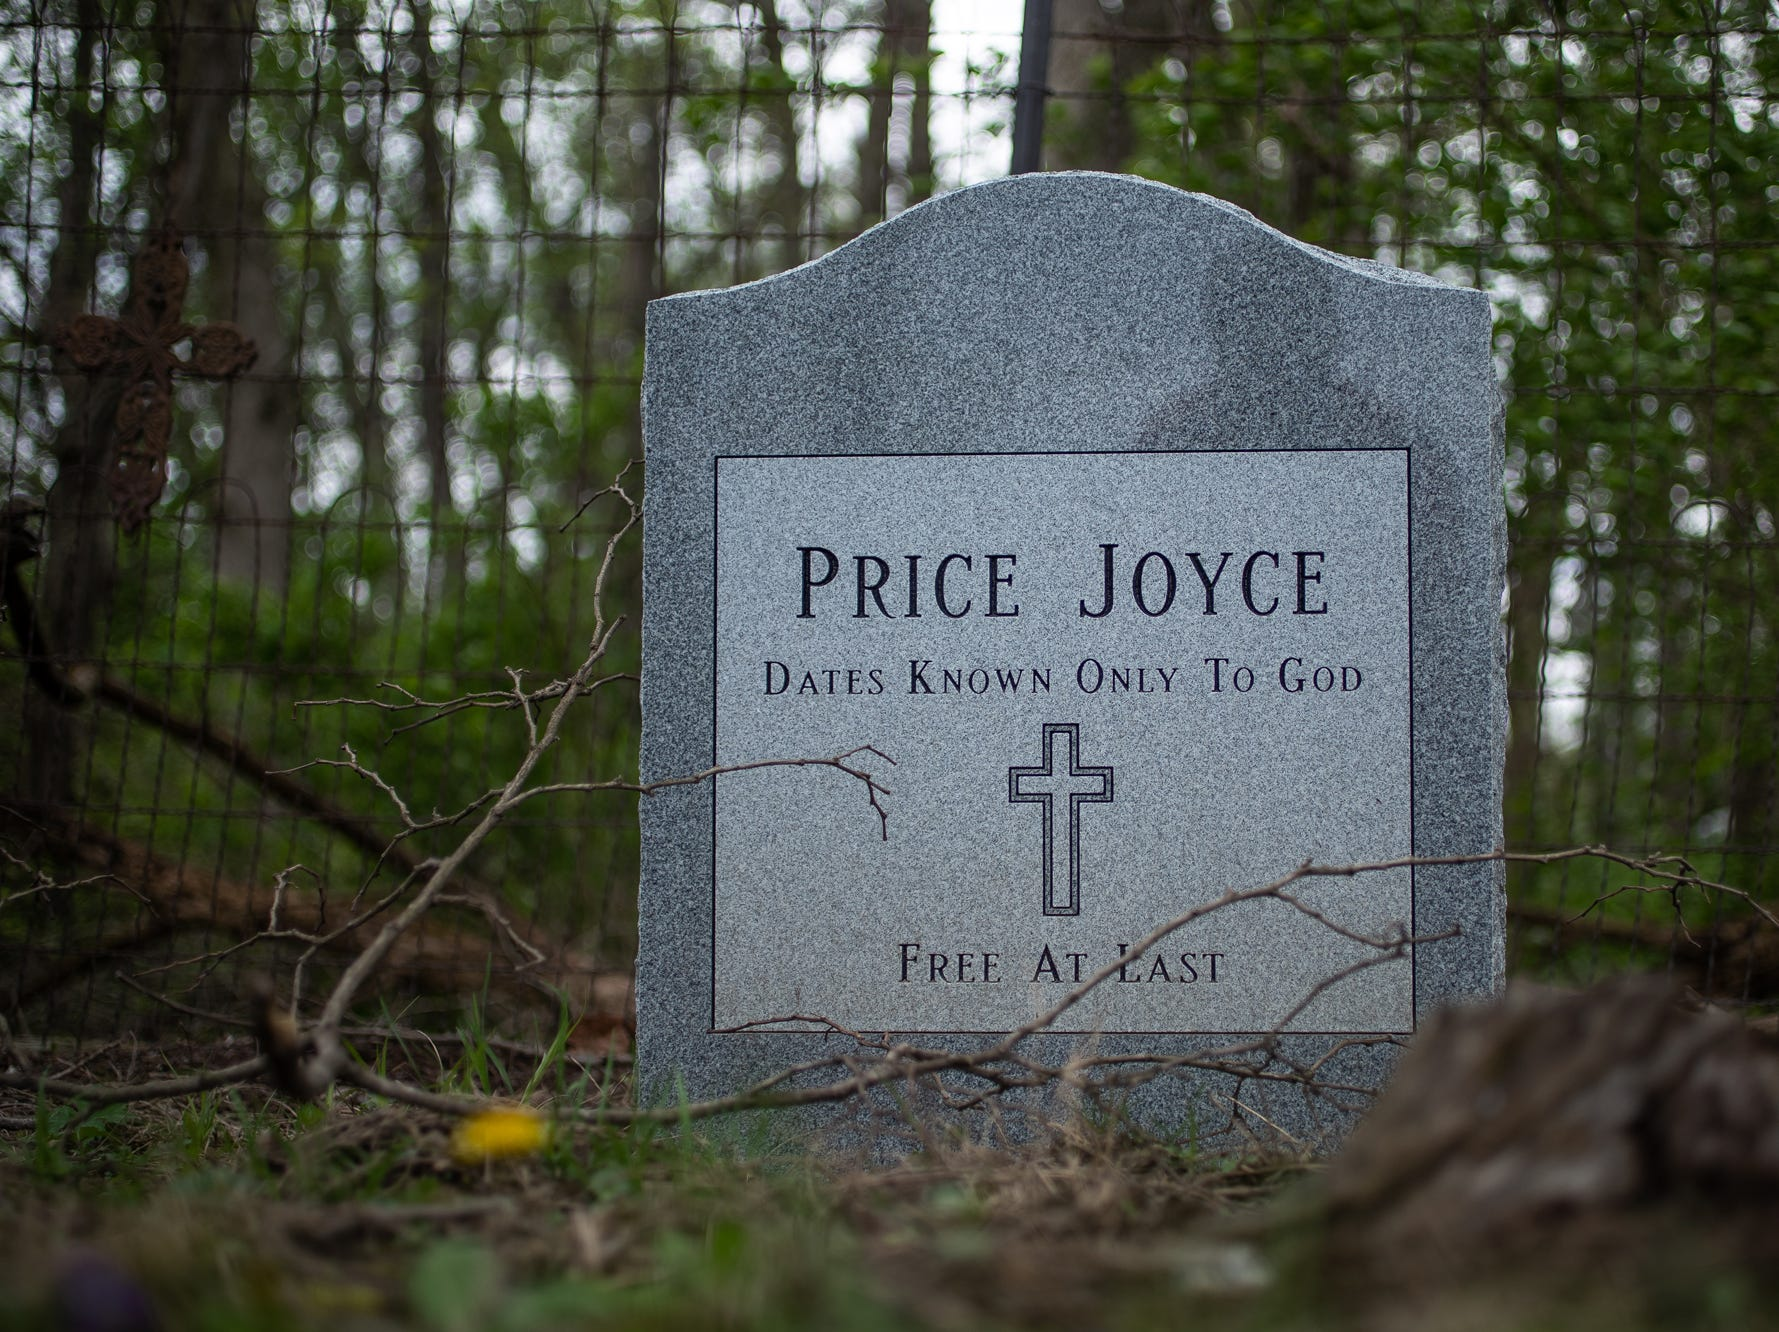 """The grave of Price Joyce sits in a small, multi-family cemetery plot, Rubush-Joyce or Sampson Cemetery, in southern Marion county on Wednesday, May 1, 2019. The grave of Joyce, a slave brought from Patrick County, Virginia to Indiana by Alexander Joyce in the 1830s, was unmarked until Joyce's great-great-great-grandson, Jeff Purvis, placed a head stone. """"I would like to believe the old family stories that he freed Price before leaving Virginia,"""" said Purvis. """"But I see no compelling evidence to support that."""""""